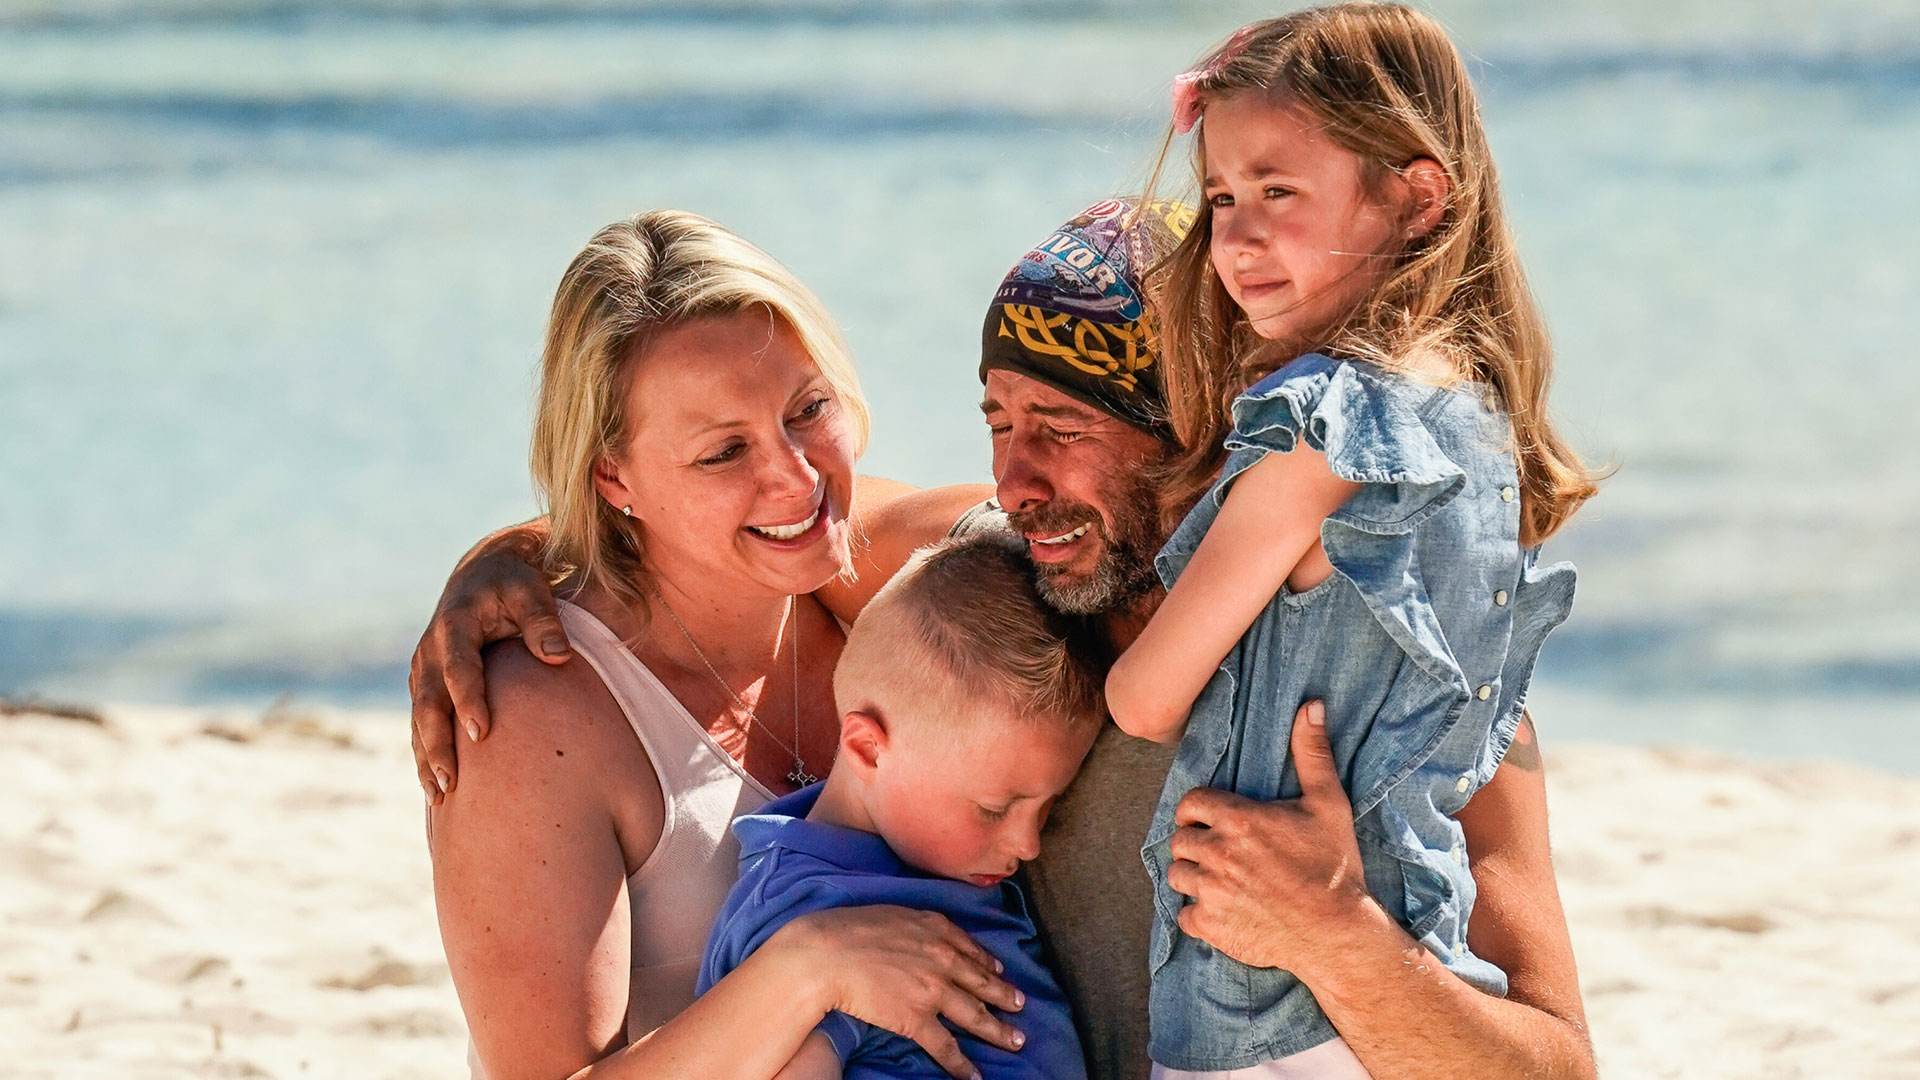 Season 40: Tony Vlachos breaks down in tears seeing his wife and kids.